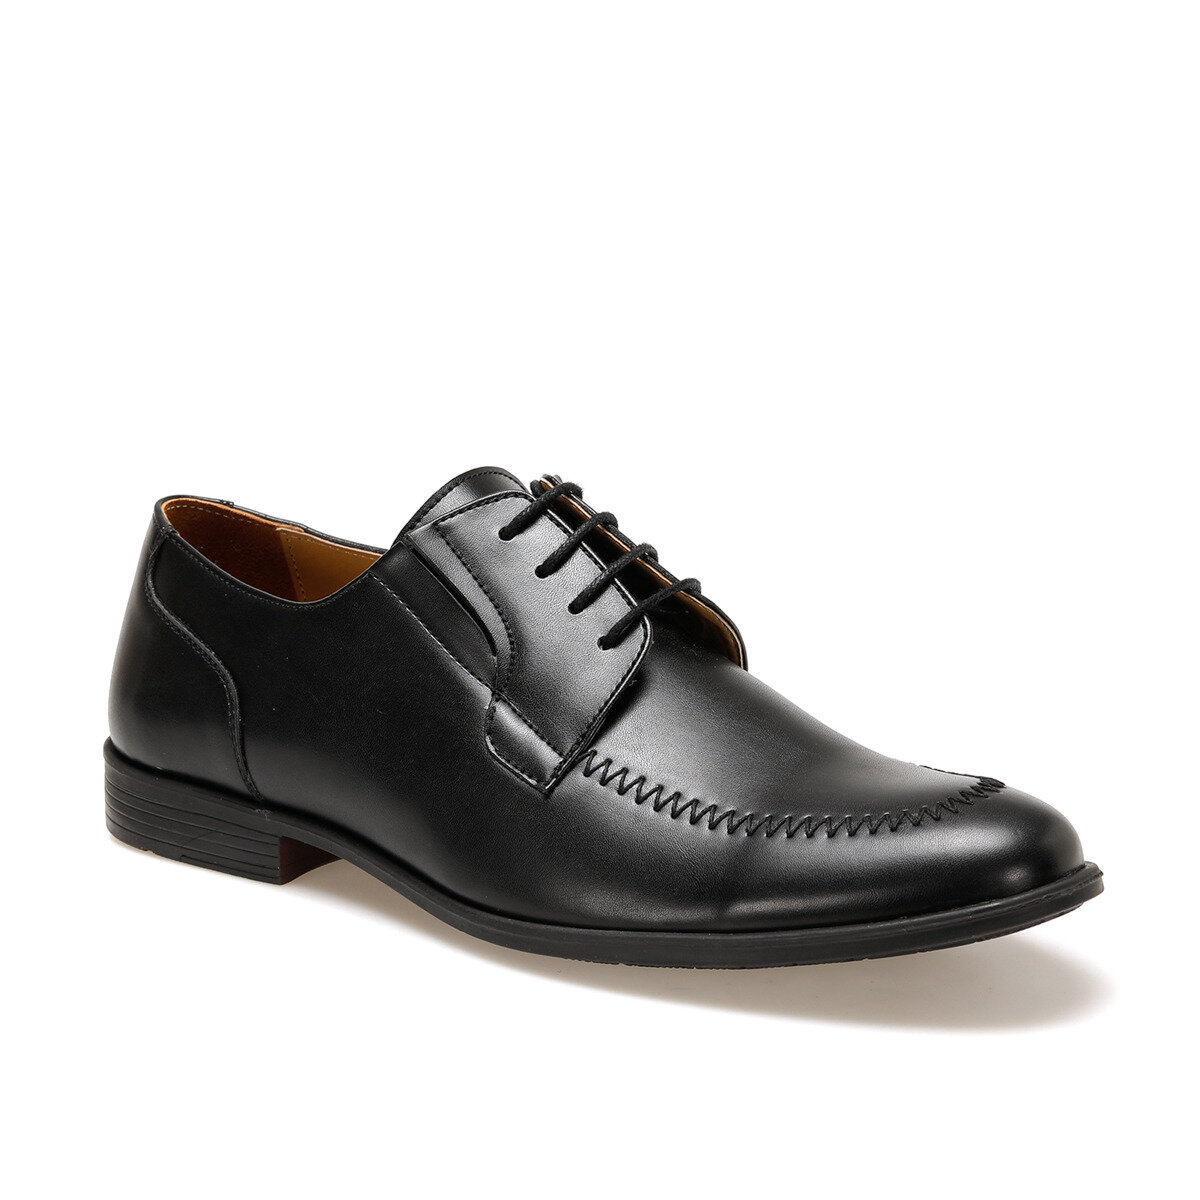 FLO 2263 Black Men Dress Shoes DOWN TOWN